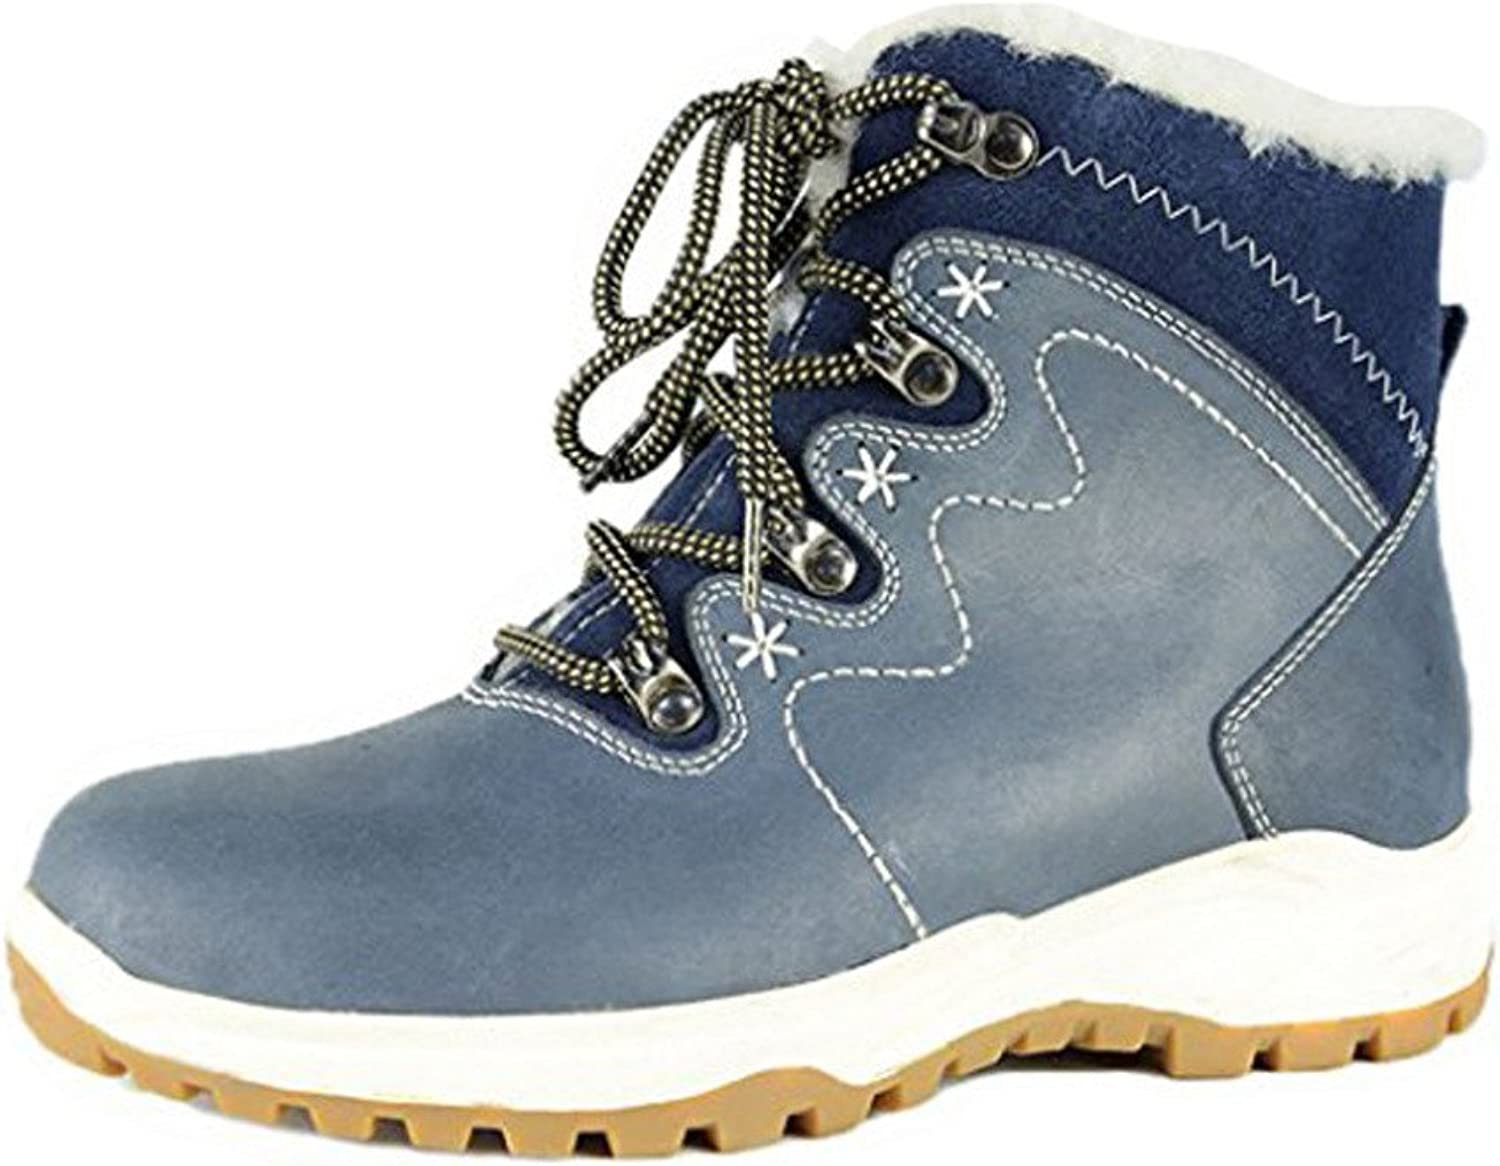 BULL TITAN Women's Genuine Leather Non-Slip Fur Lined Winter Boots Navy